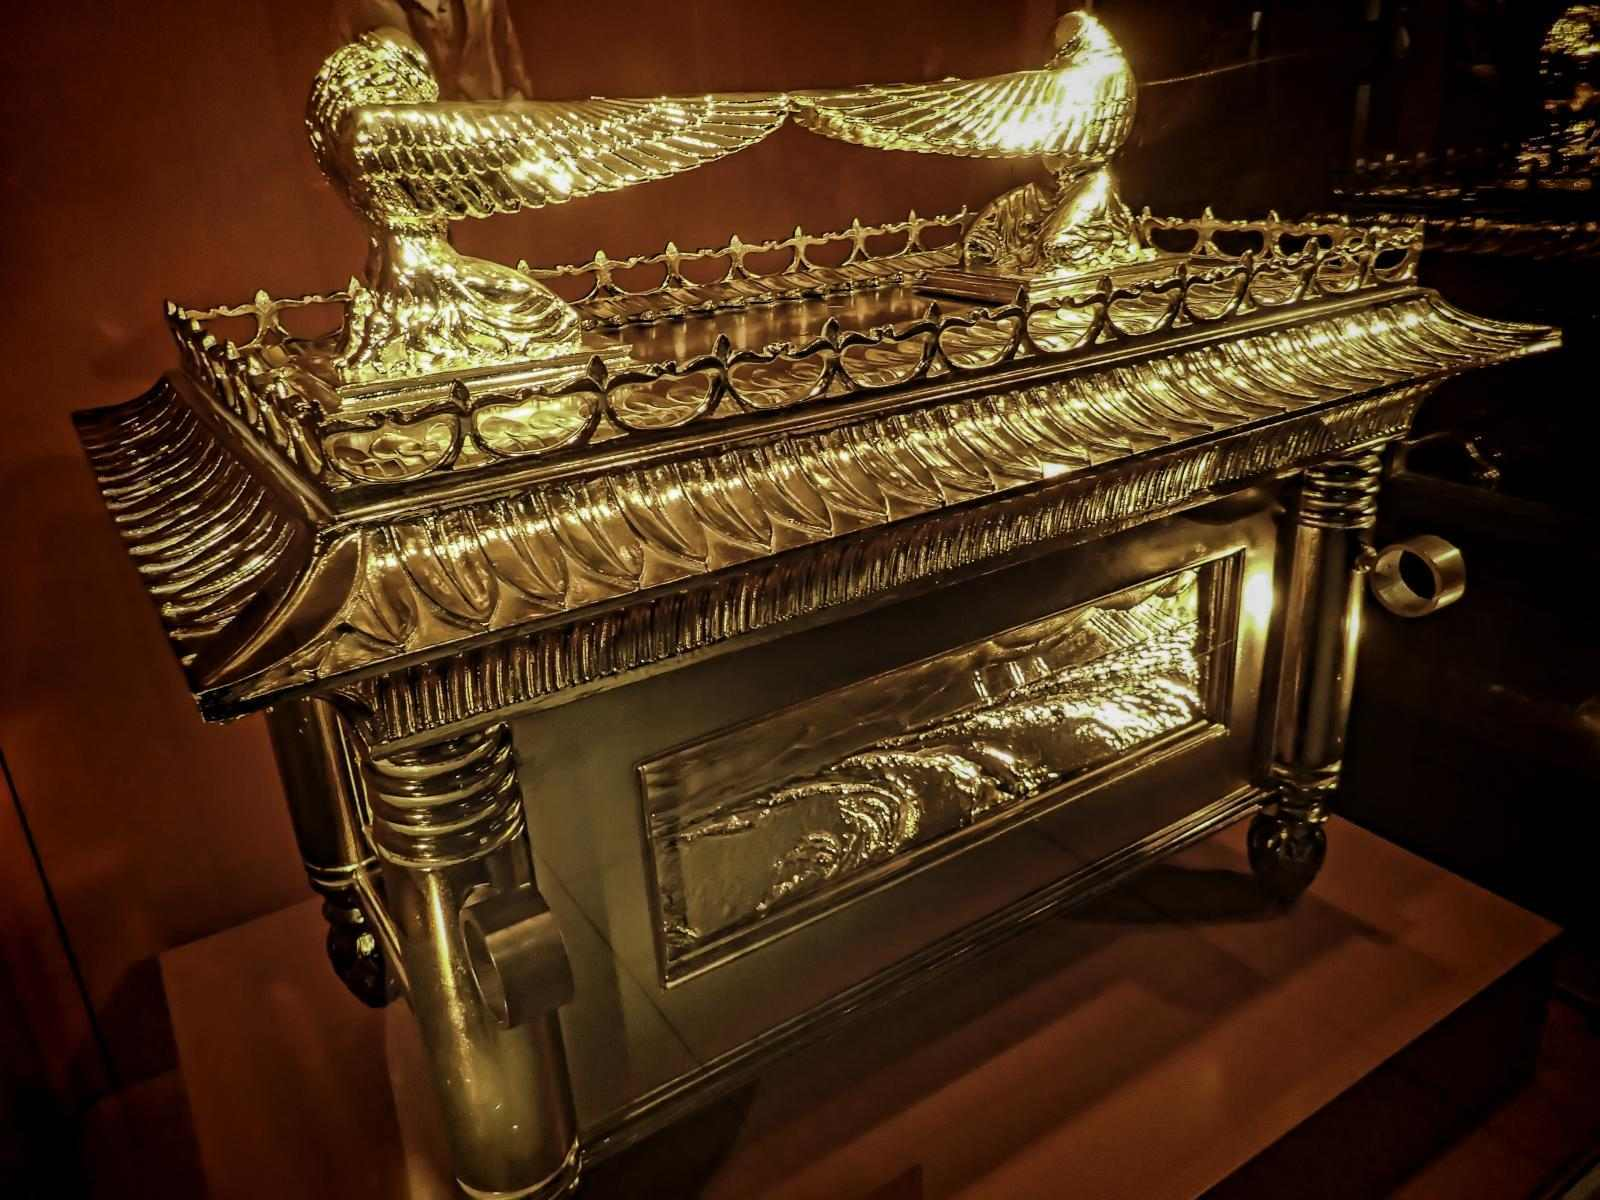 The Manna Machine: The mysterious alien machine that produced food for desert people 8